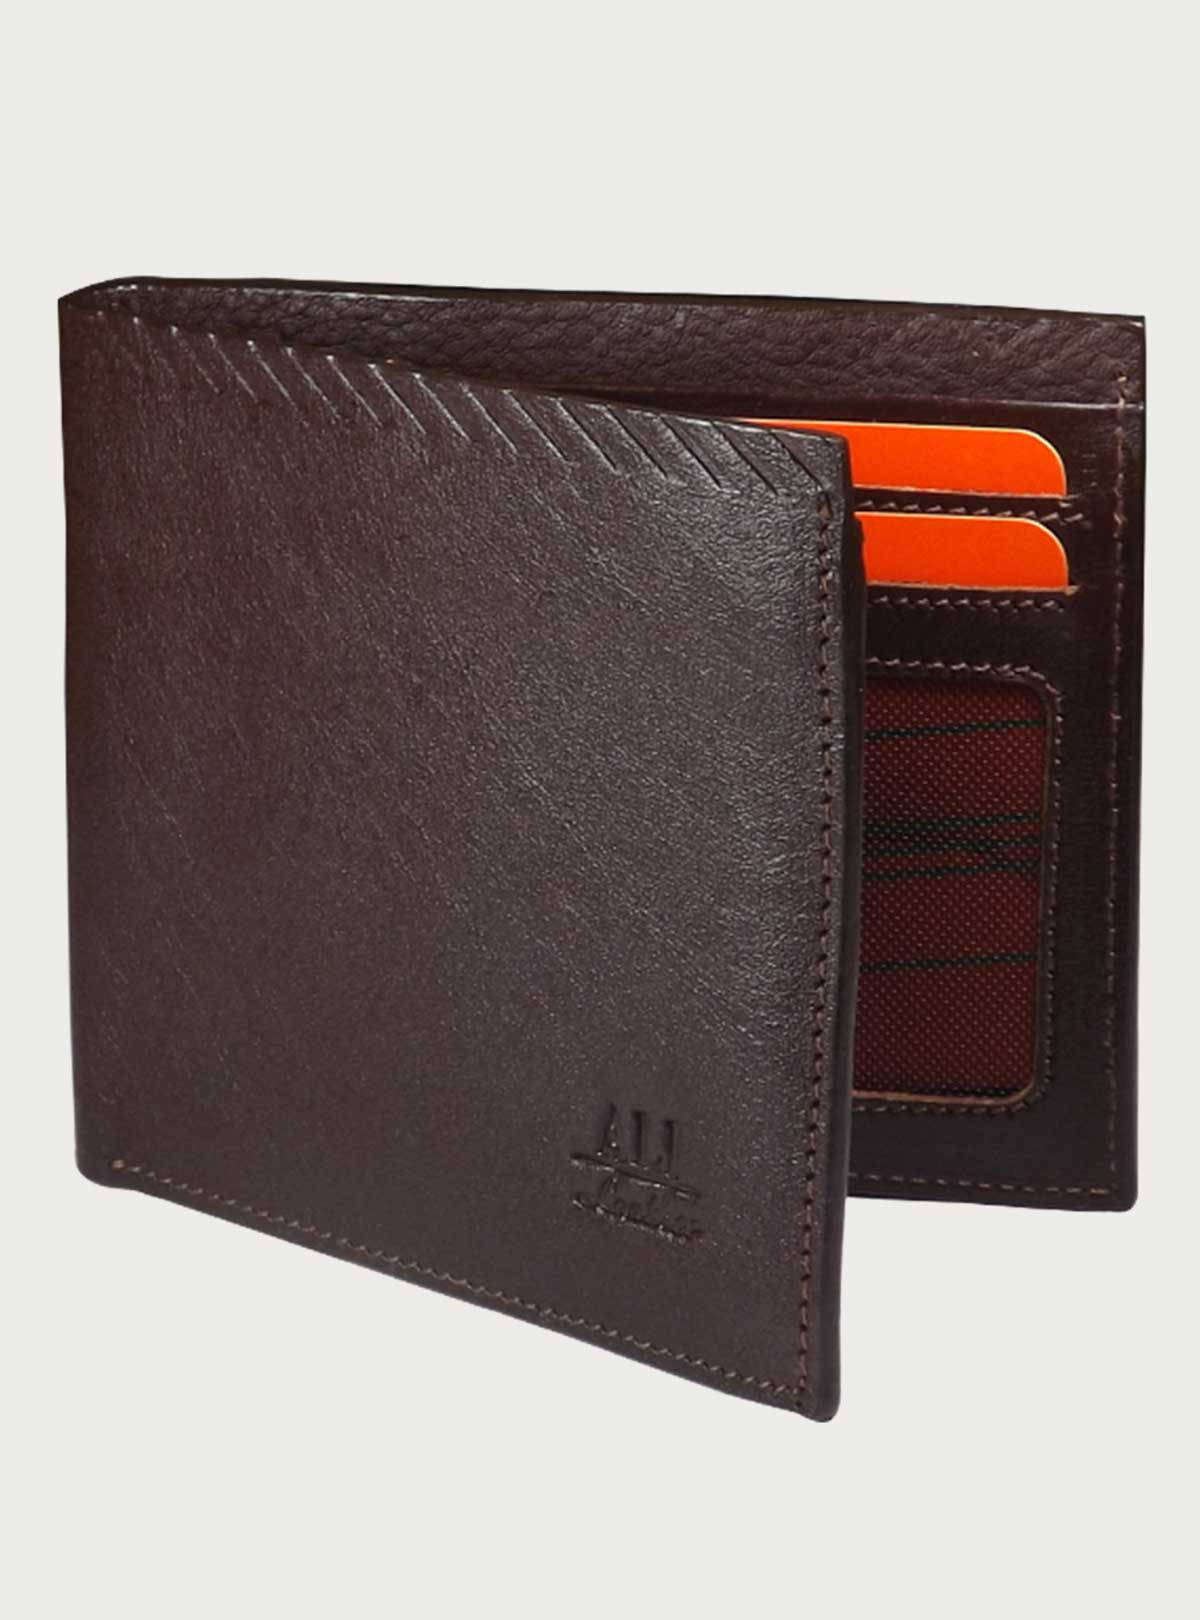 Classic men's Leather wallet AR-76 with SIM/SD Card Slot